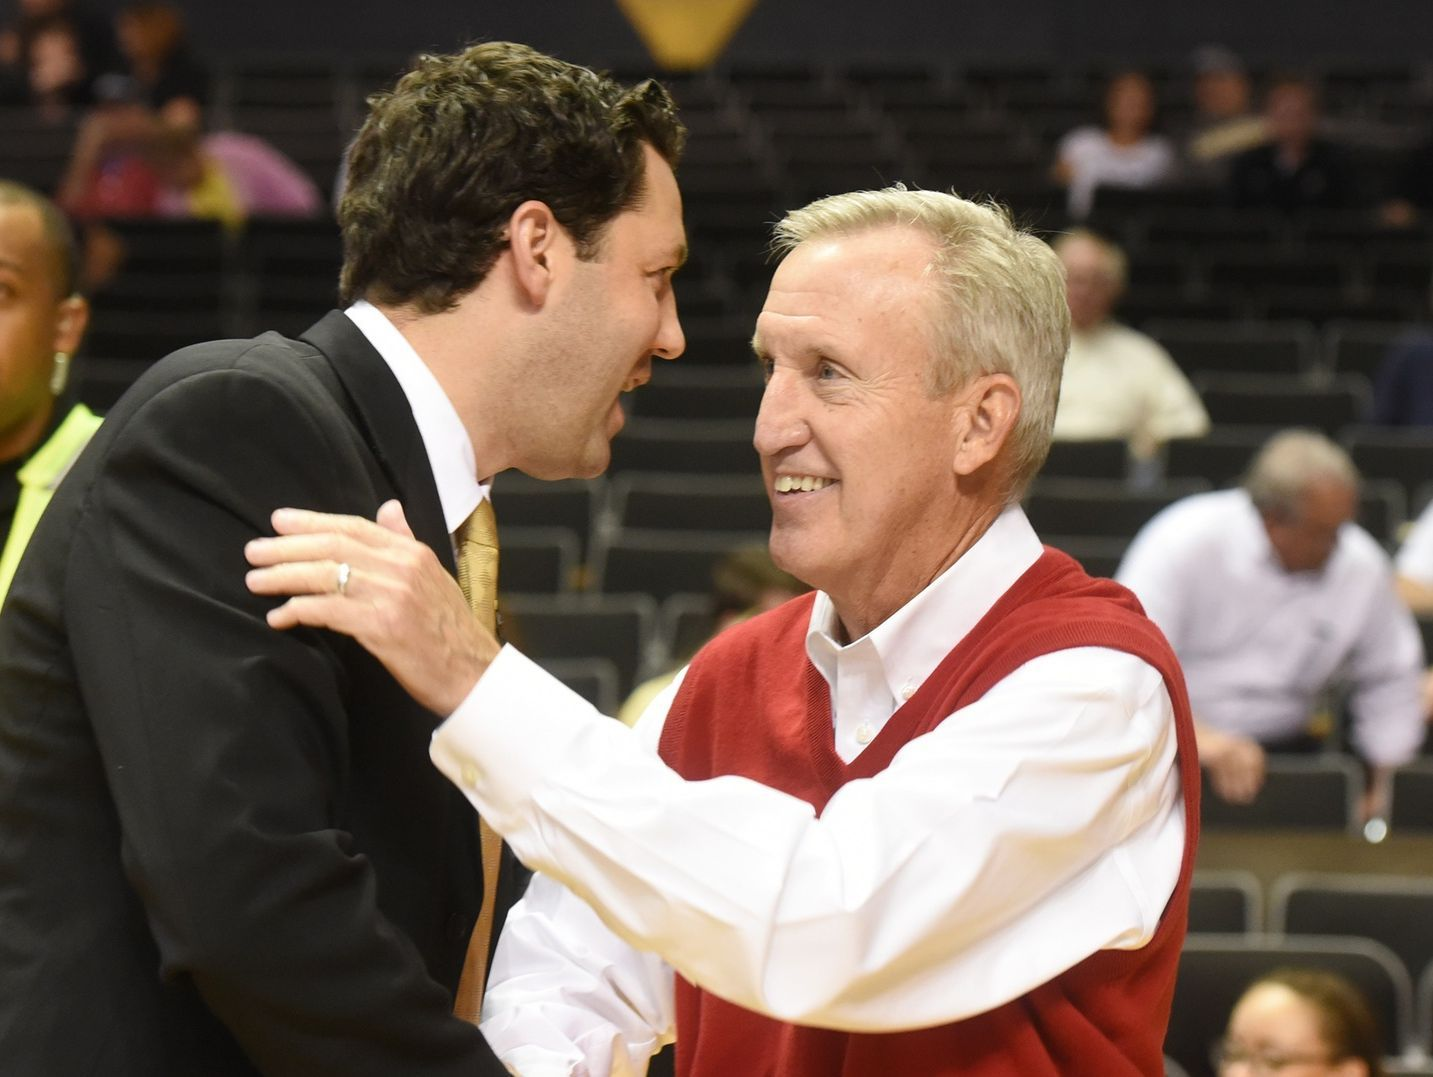 Vanderbilt second-year coach Bryce Drew, left, and Belmont's Rick Byrd will lead their team's against each other in a game at Belmont's Curb Event Center in November.